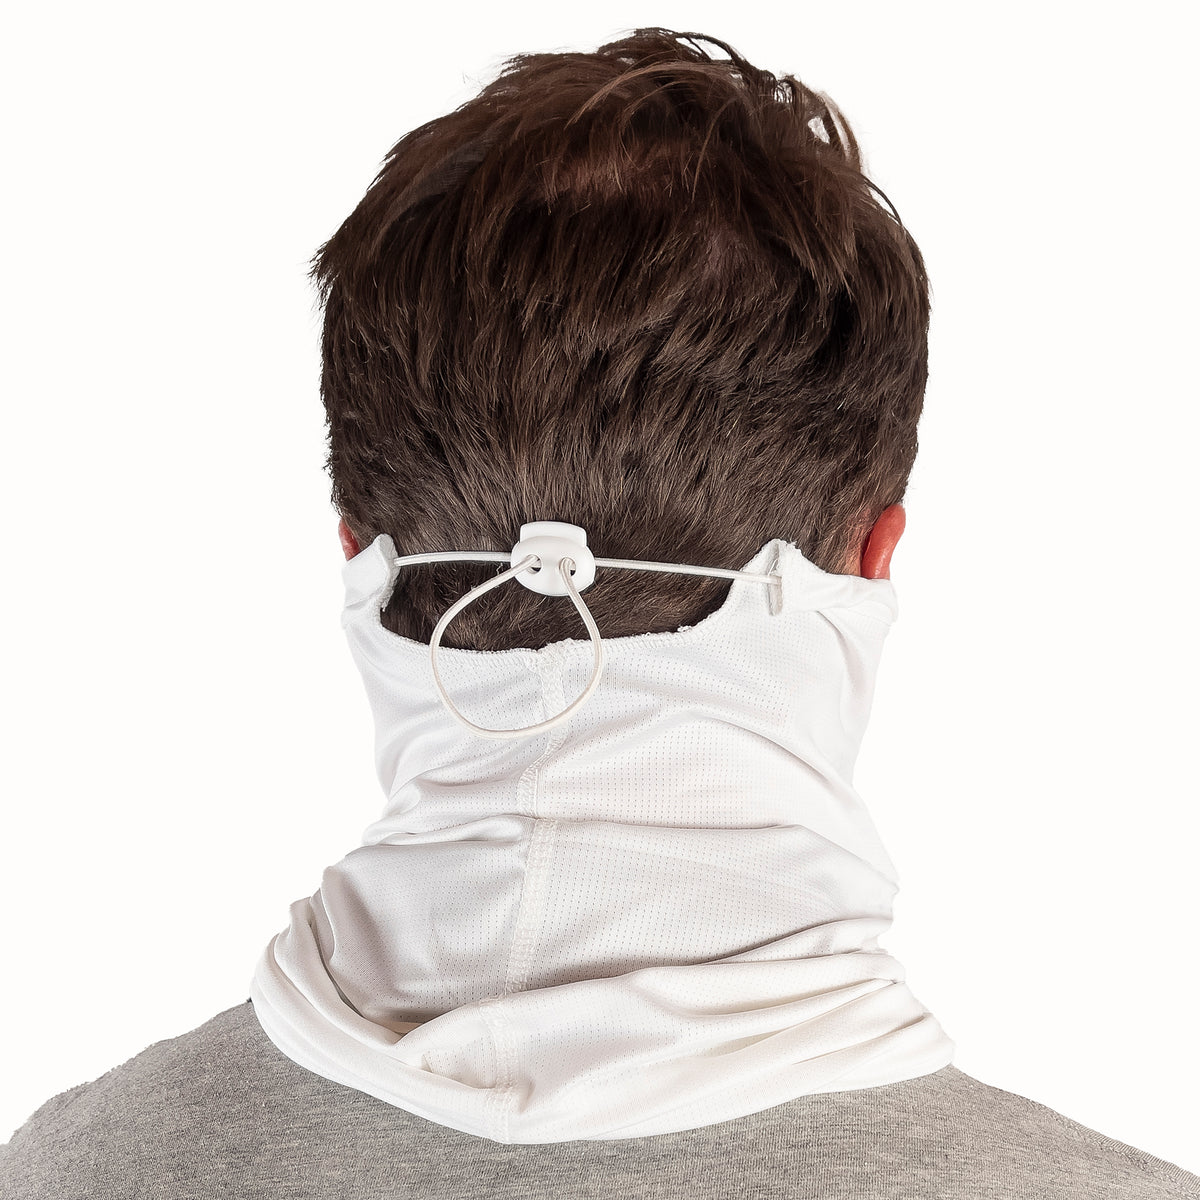 Puretec cool® Antimicrobial Neck Gaiter with Nanofiber Filter in White/Buoy